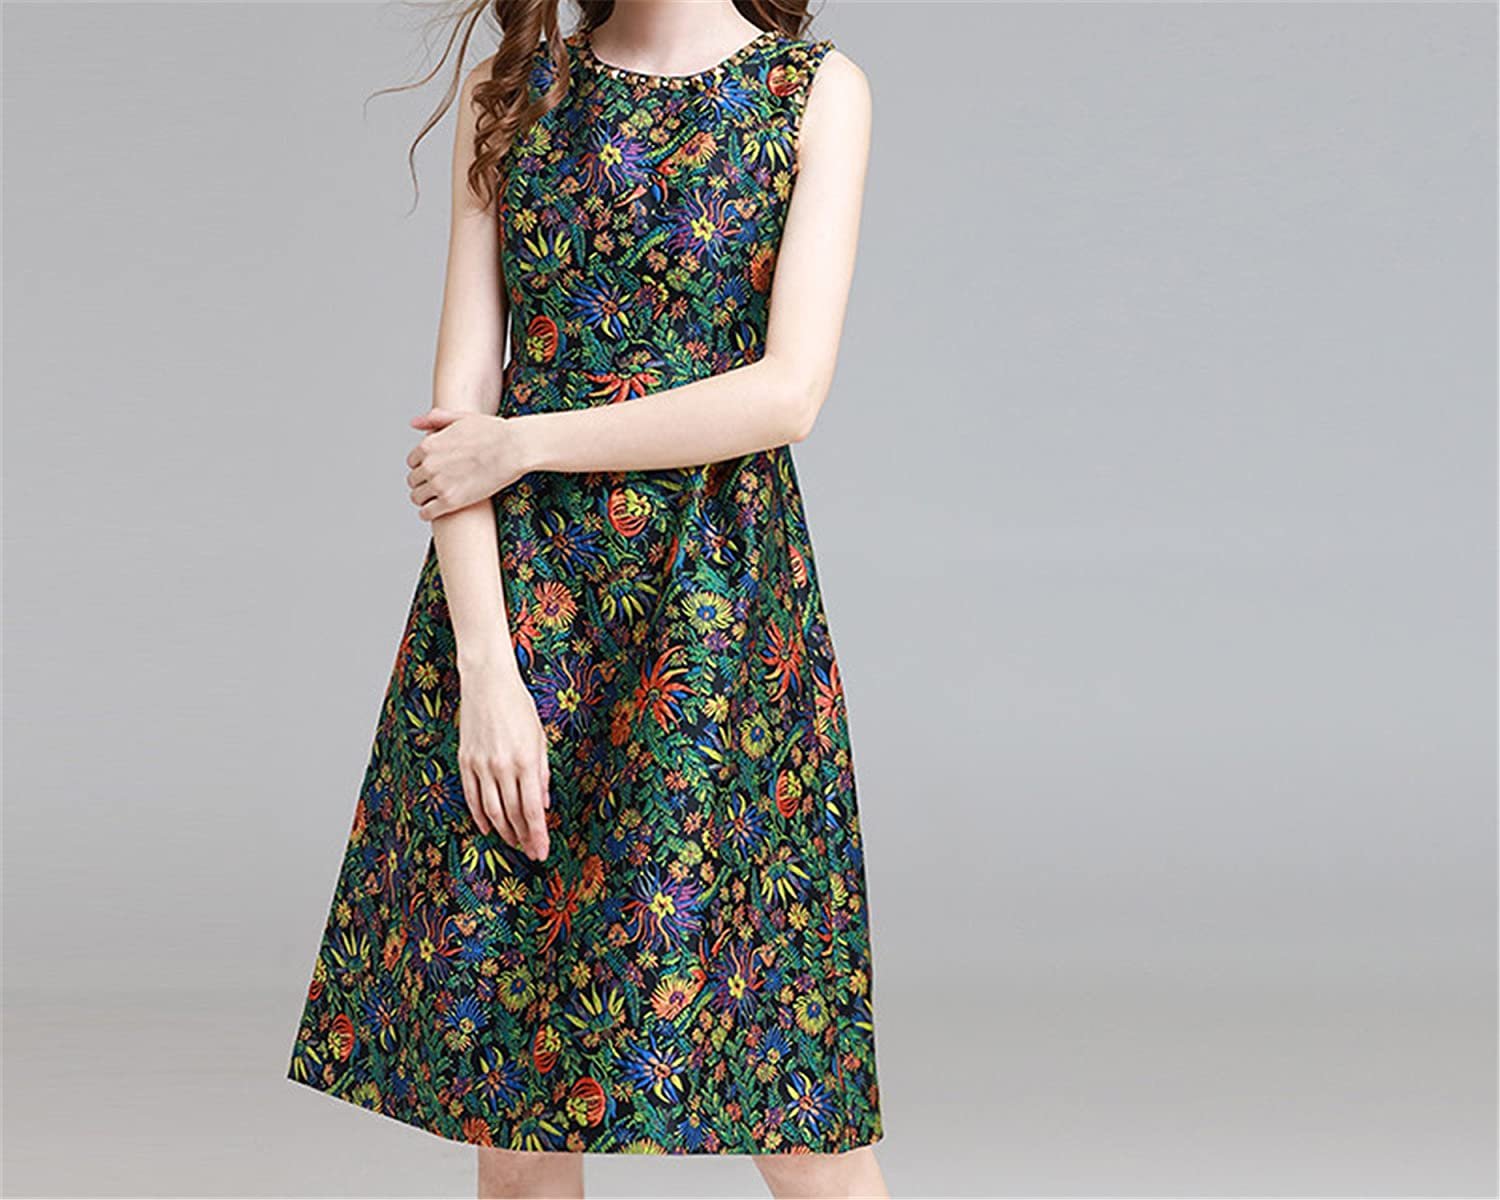 Amazon.com: GBBTR Fashion Womens Elegant Sleeveless Casual Party Floral Print Vintage Knee Length Dress: Clothing